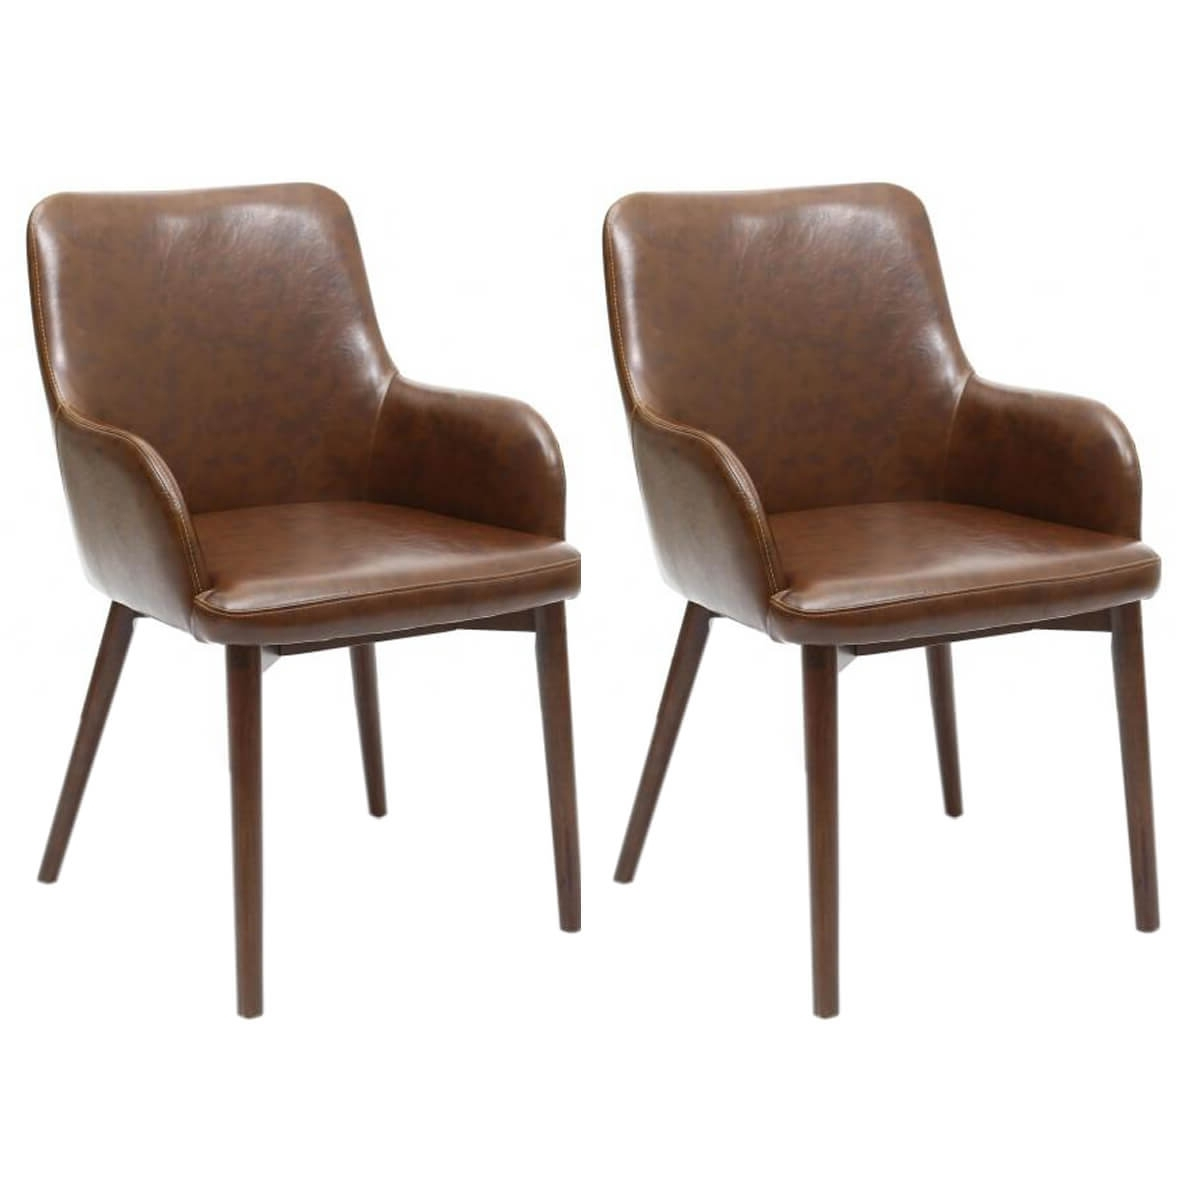 Brown Leather Dining Chairs Regarding Widely Used Sidcup Vintage Brown Leather Dining Chairs (Gallery 6 of 25)